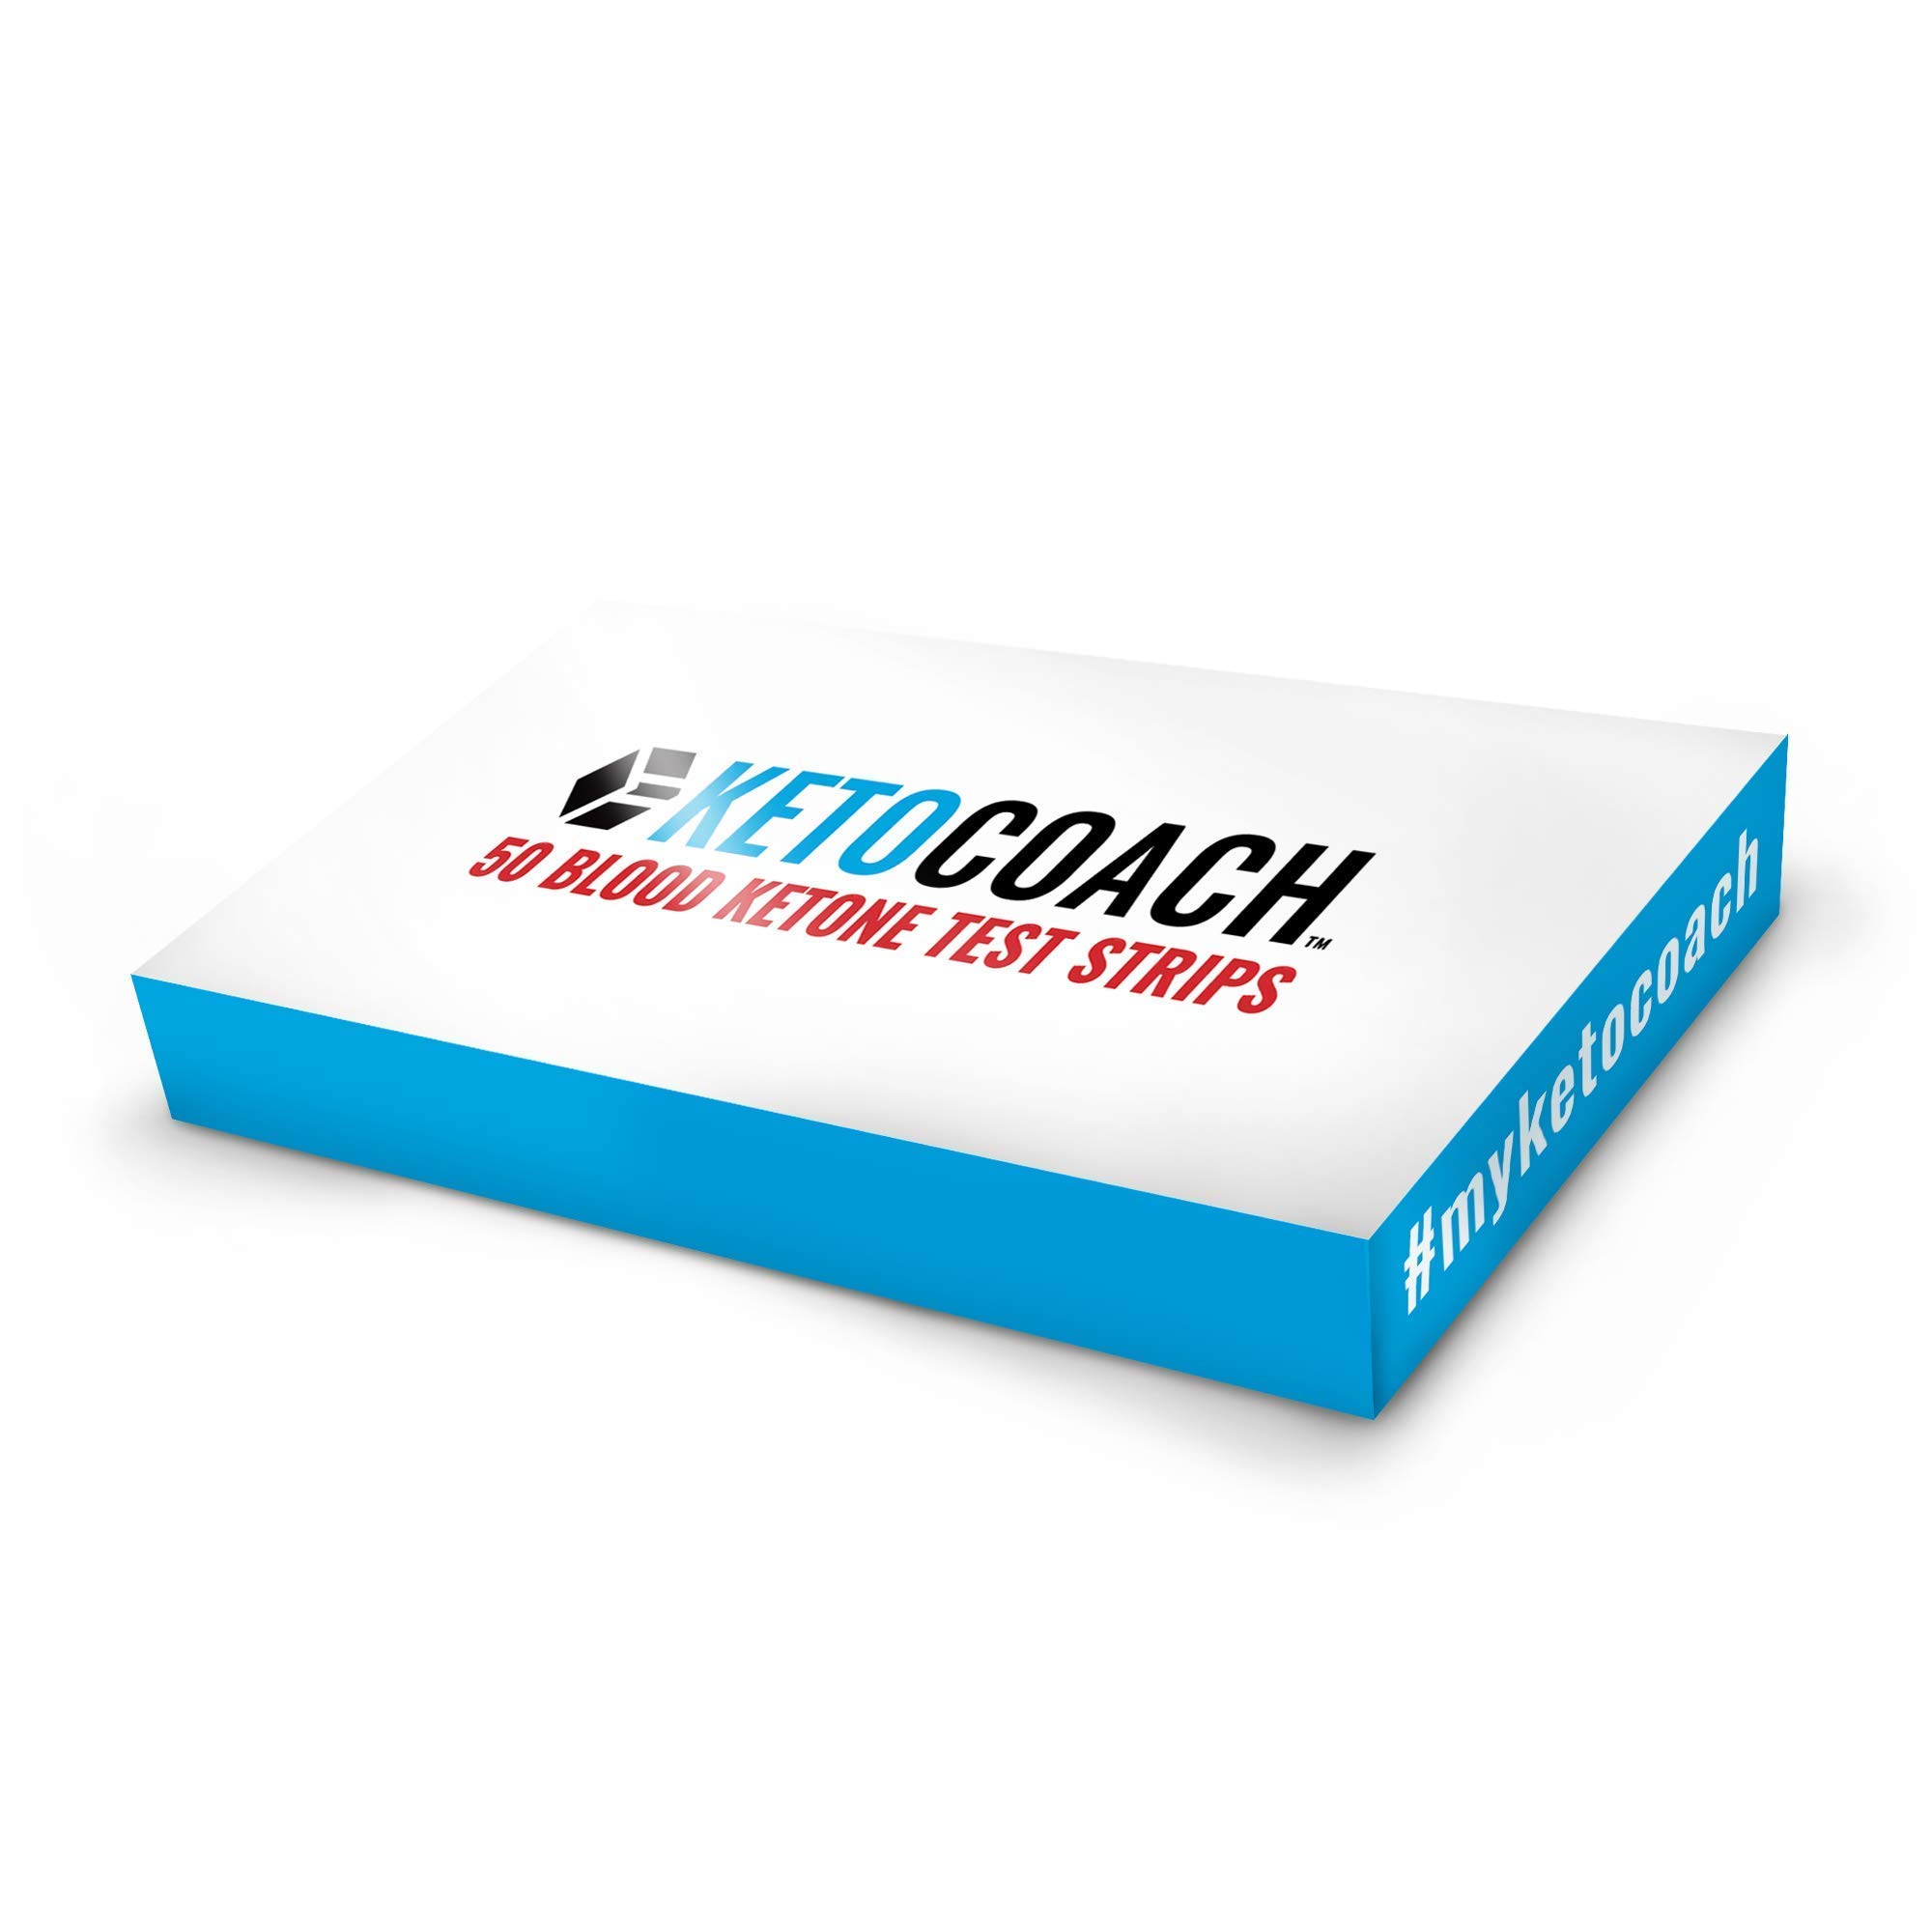 KetoCoach Blood Ketone Strips (50 Pack) - for Use with KetoCoach Blood Ketone Meter - Measure Blood Ketones on The Ketogenic Diet by KetoCoach